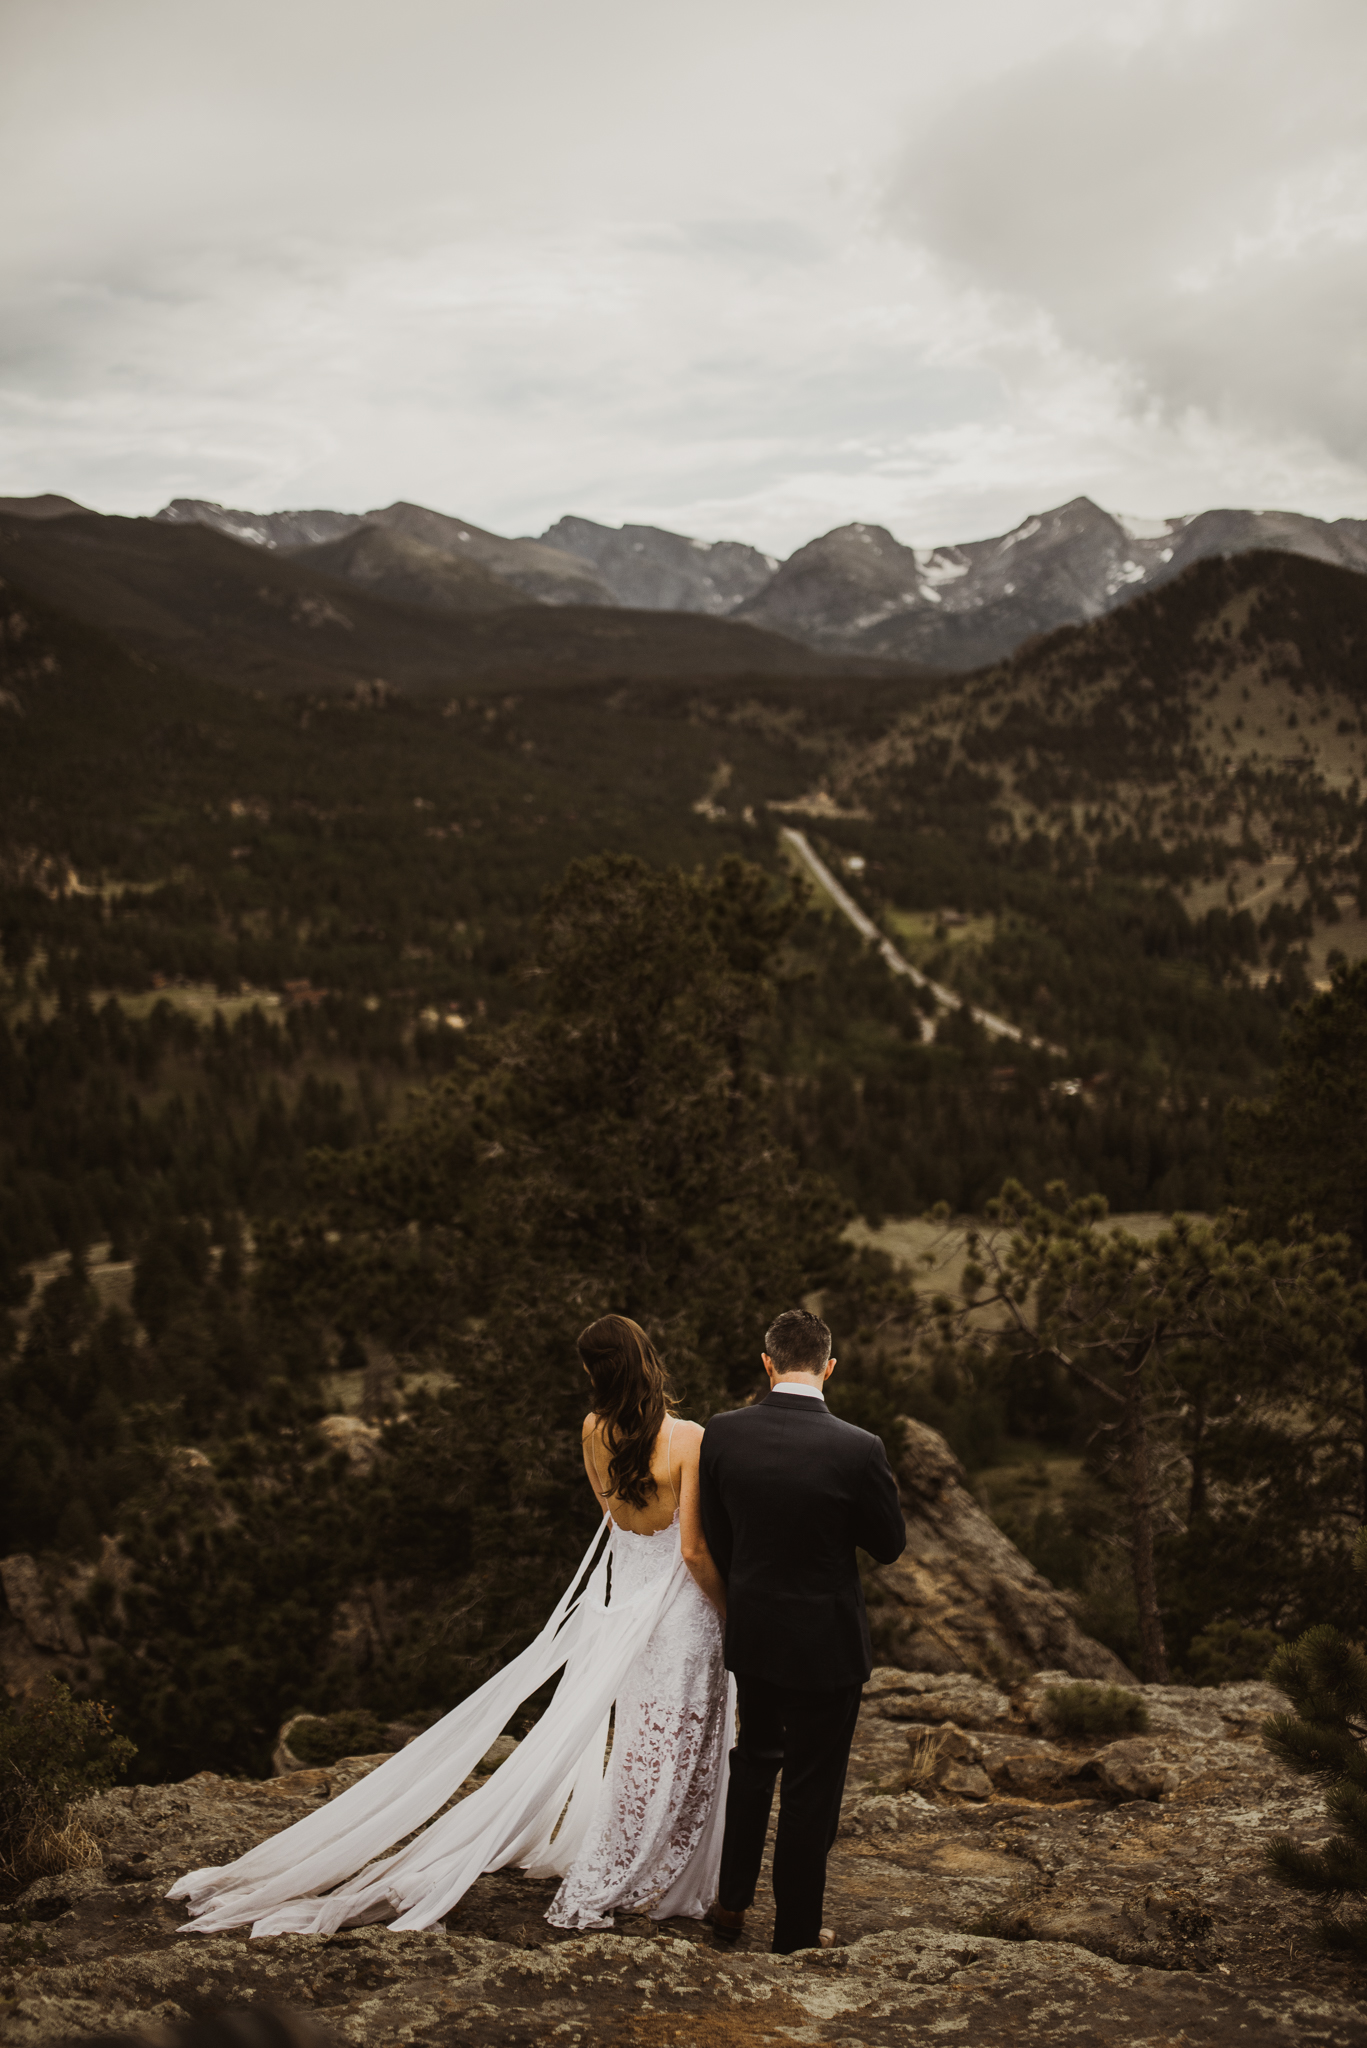 ©Isaiah + Taylor Photography - Estes National Park Adventure Elopement, Colorado Rockies-129.jpg